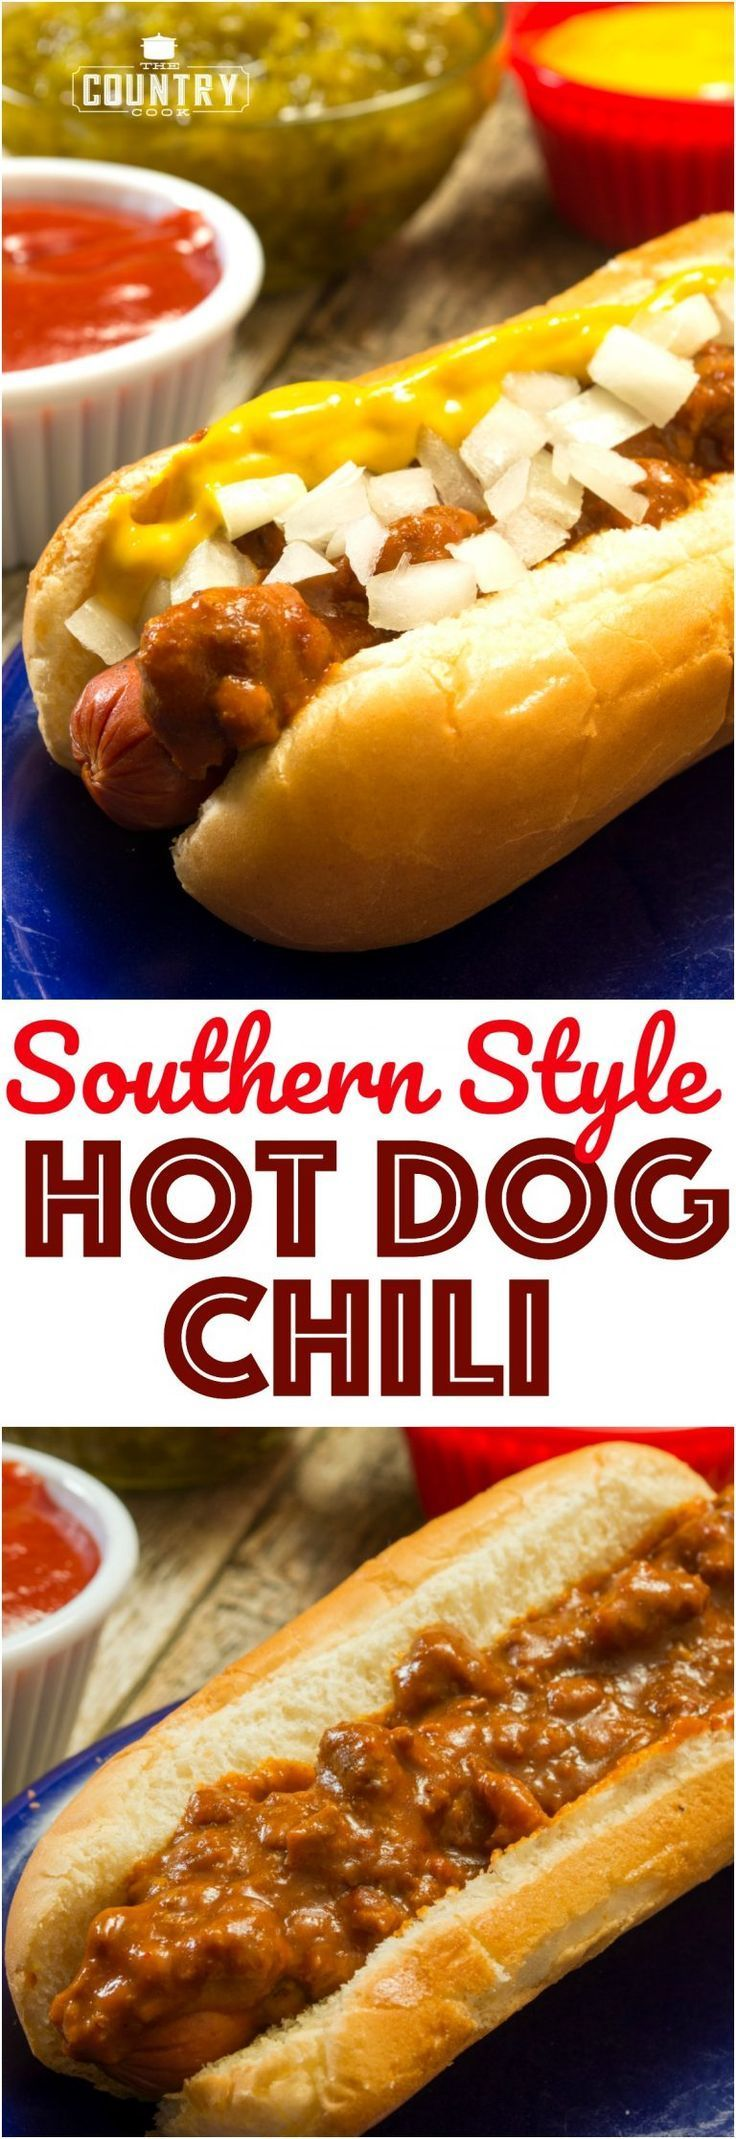 Southern Style Homemade Hot Dog Chili with Ground Beef and No Beans recipe from The Country Cook